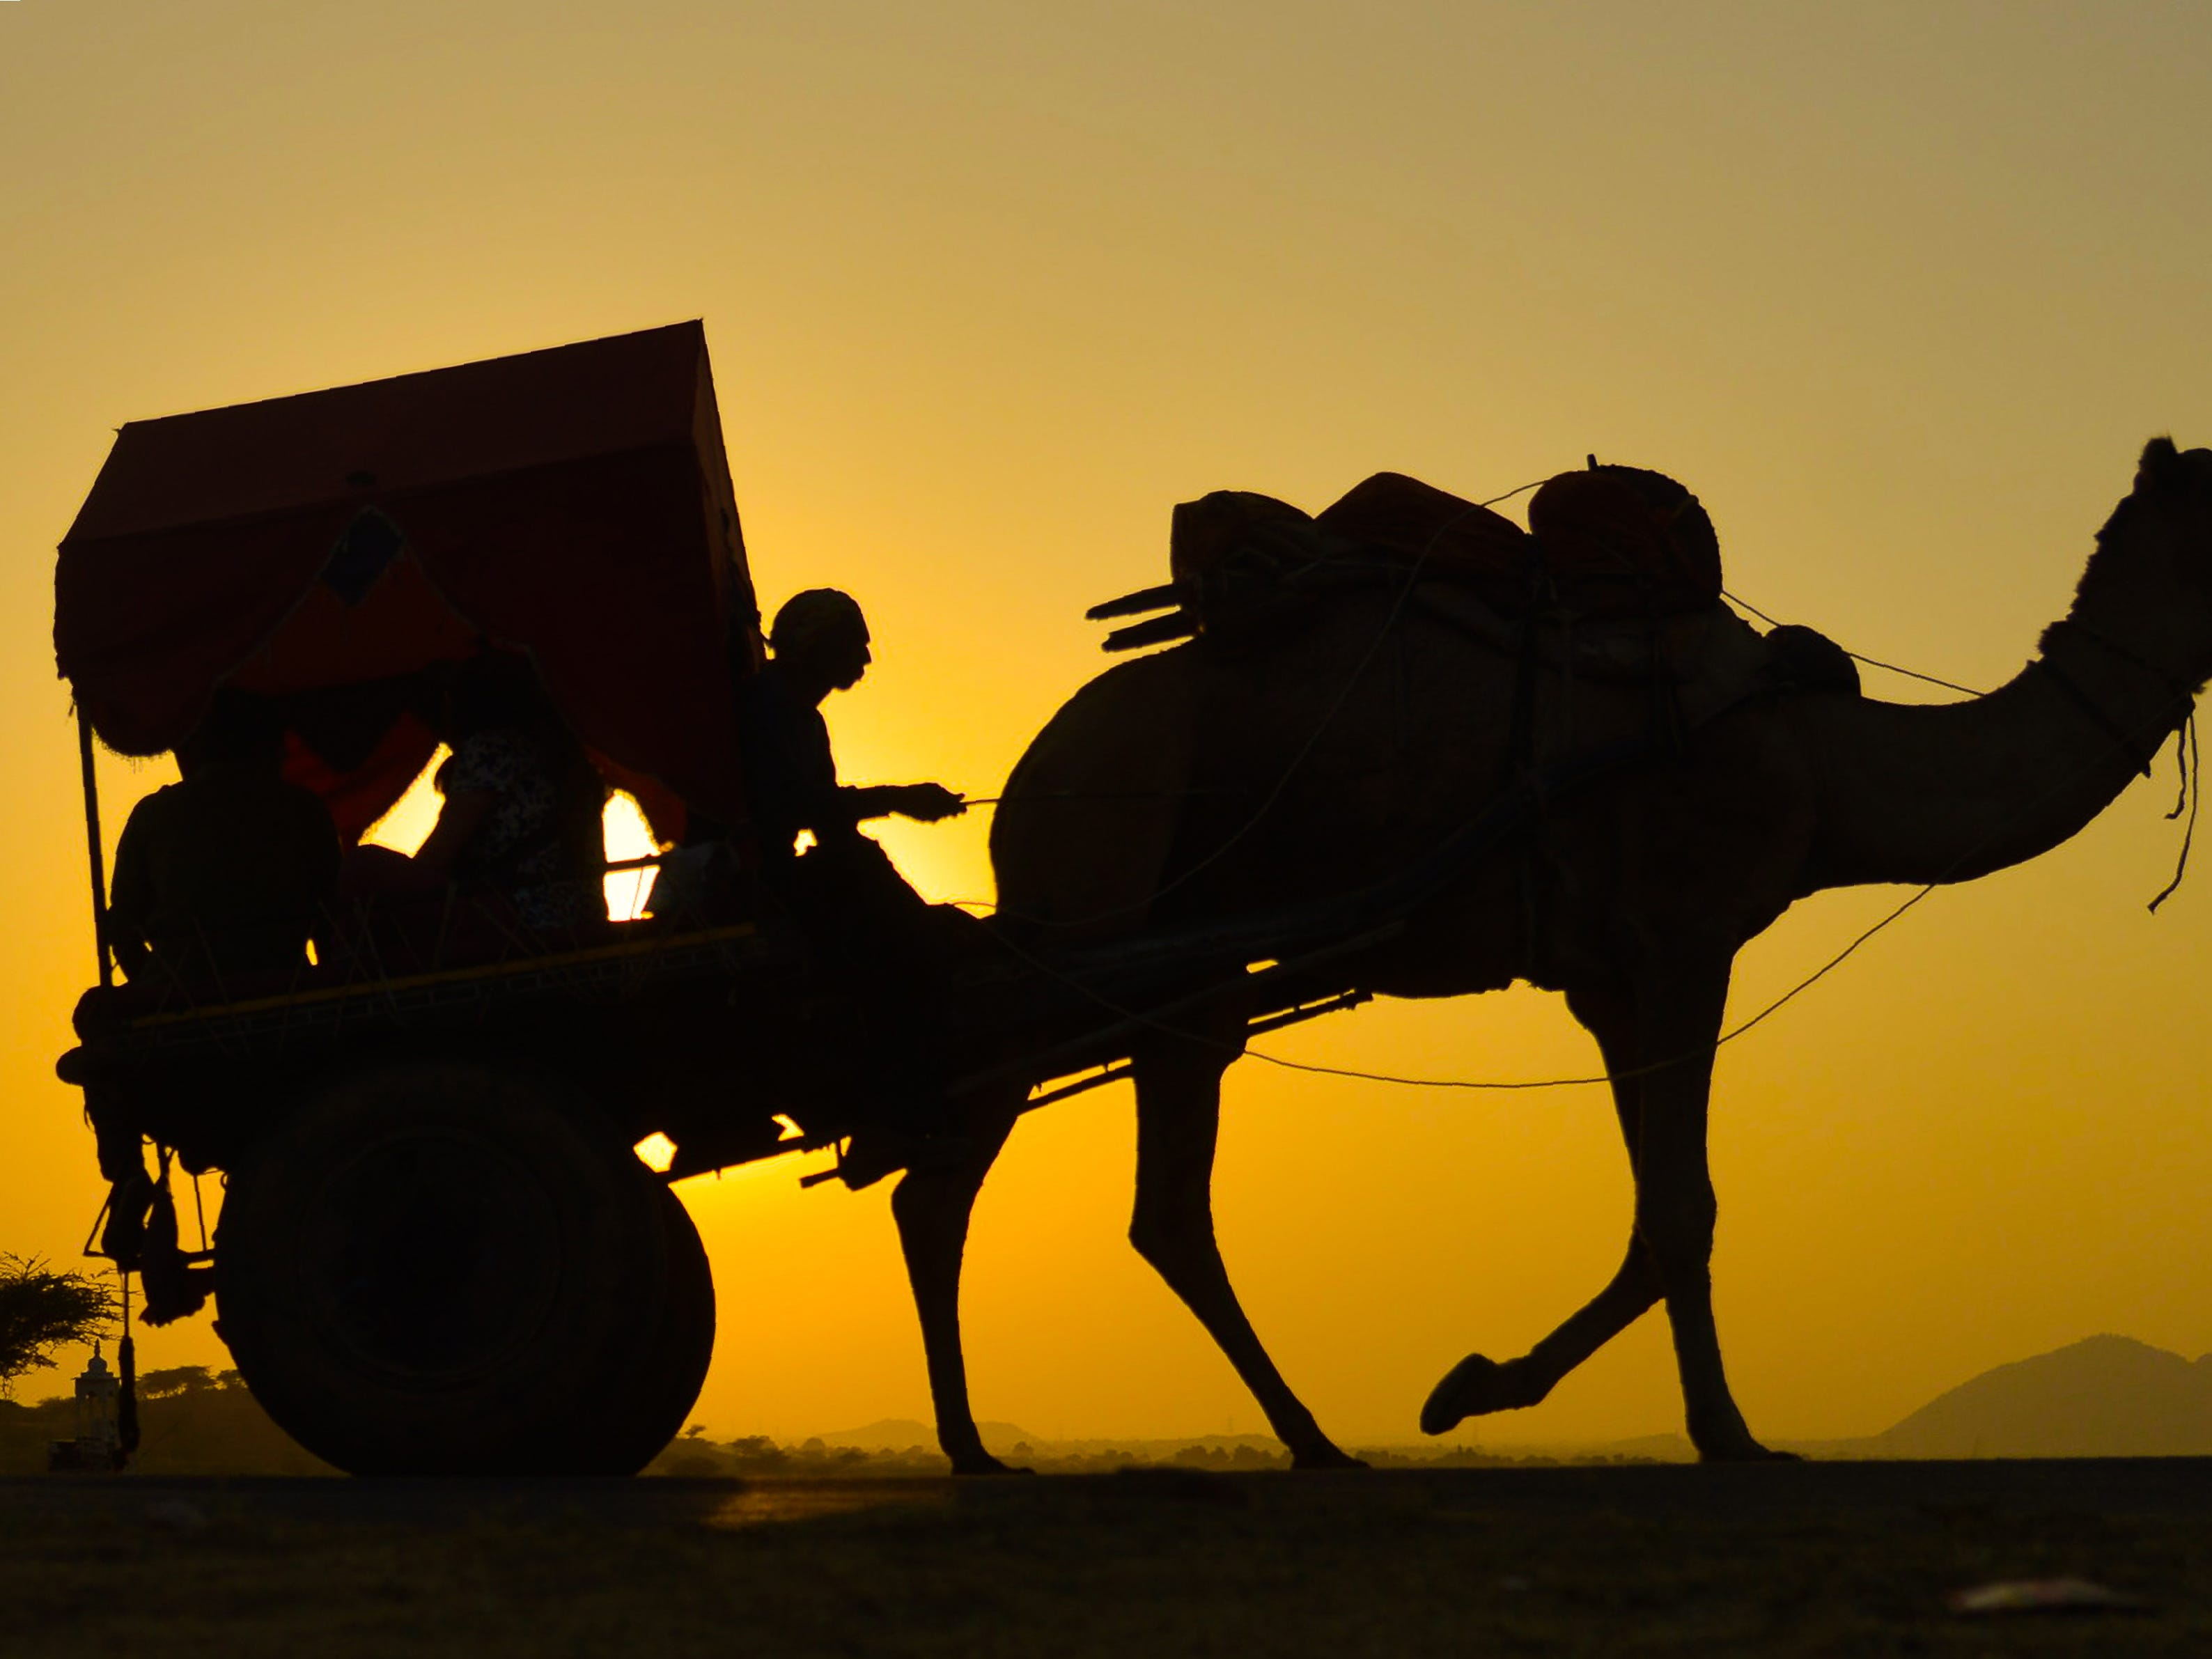 An Indian man rides on a camel cart during at the Pushkar Camel Fair in Pushkar, in the western state of Rajasthan on November 12, 2018. - Thousands of livestock traders from the region come to the traditional camel fair where livestock, mainly camels, are traded. The annual five-day camel and livestock fair is one of the world's largest camel fairs.